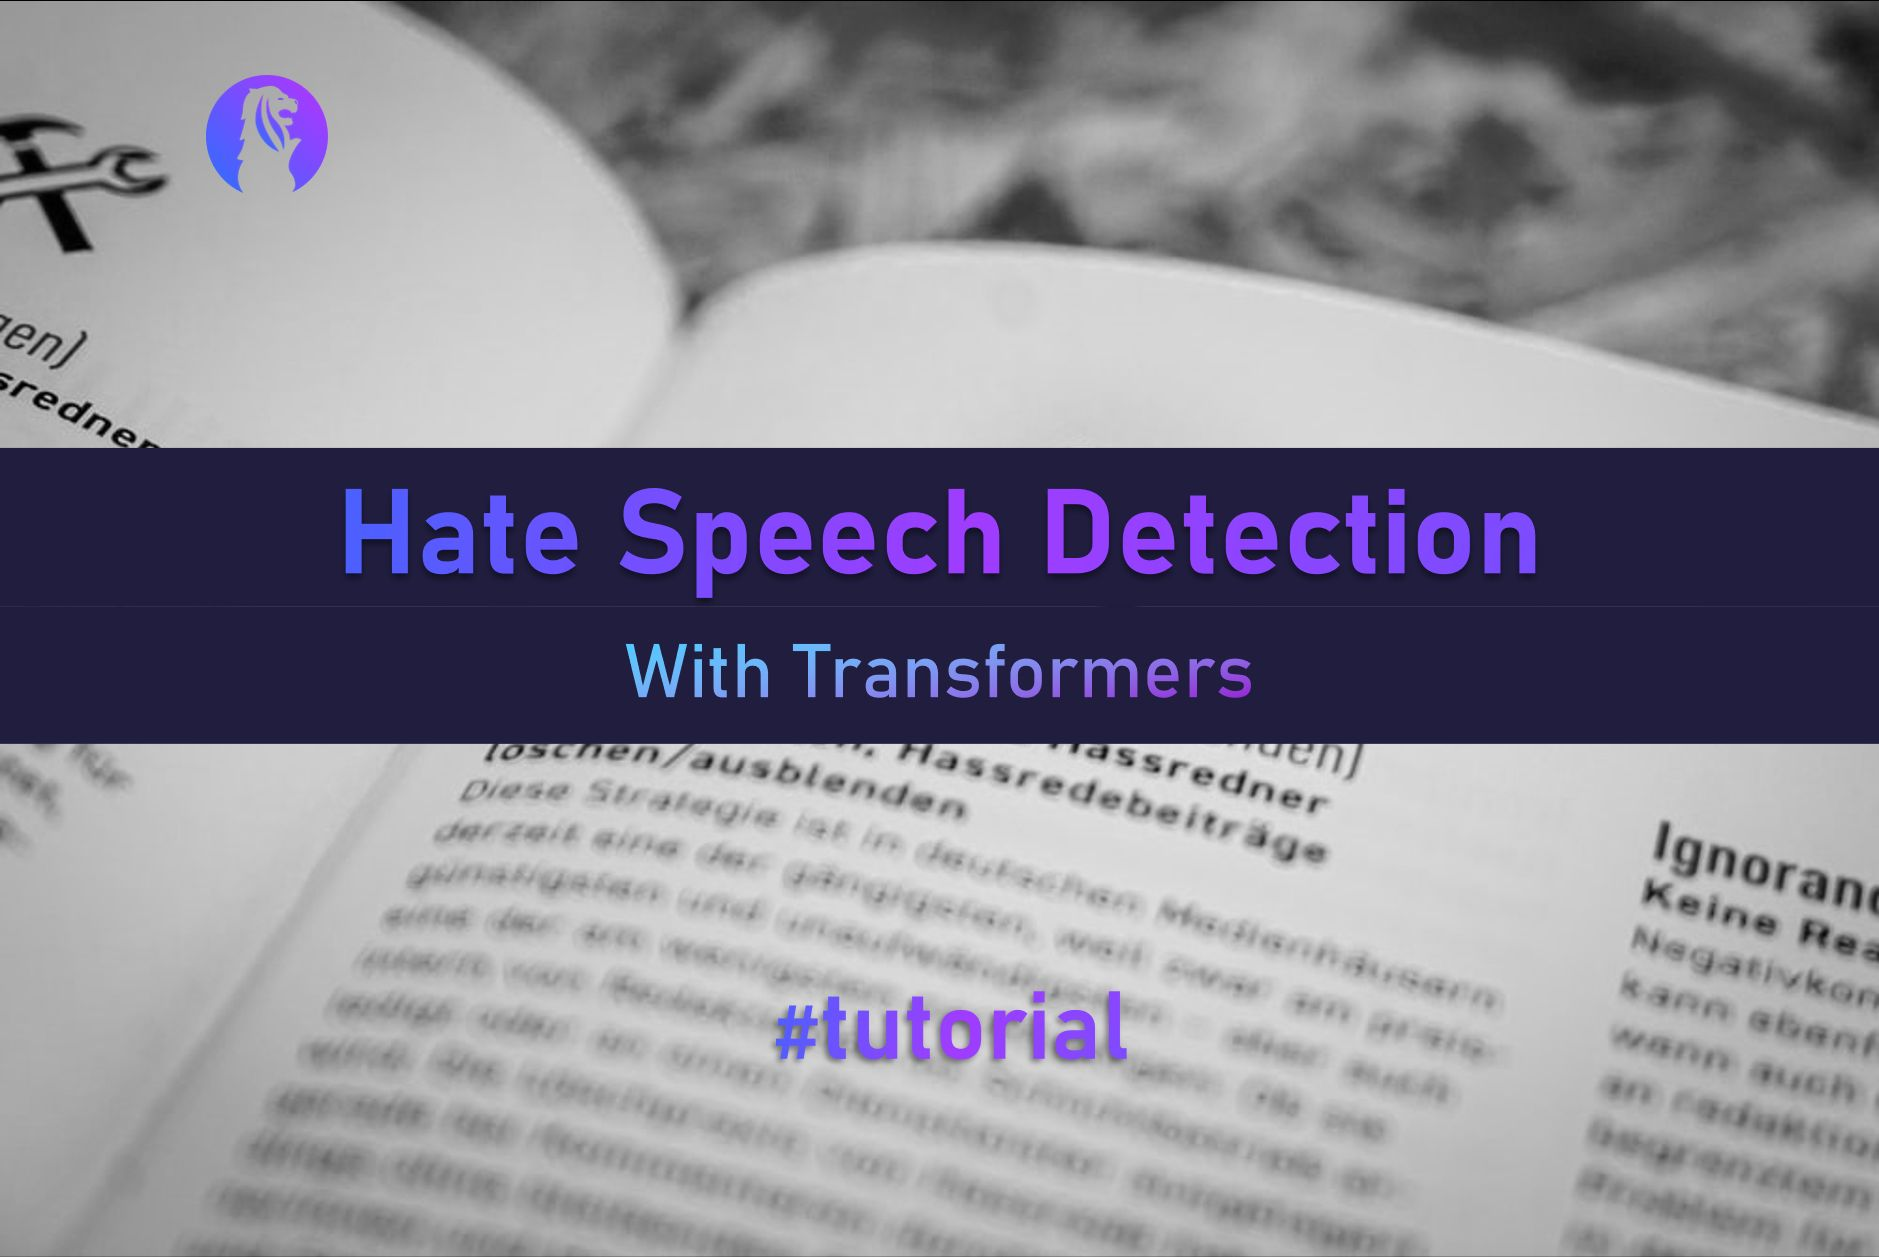 Hate Speech Detection on Dynabench